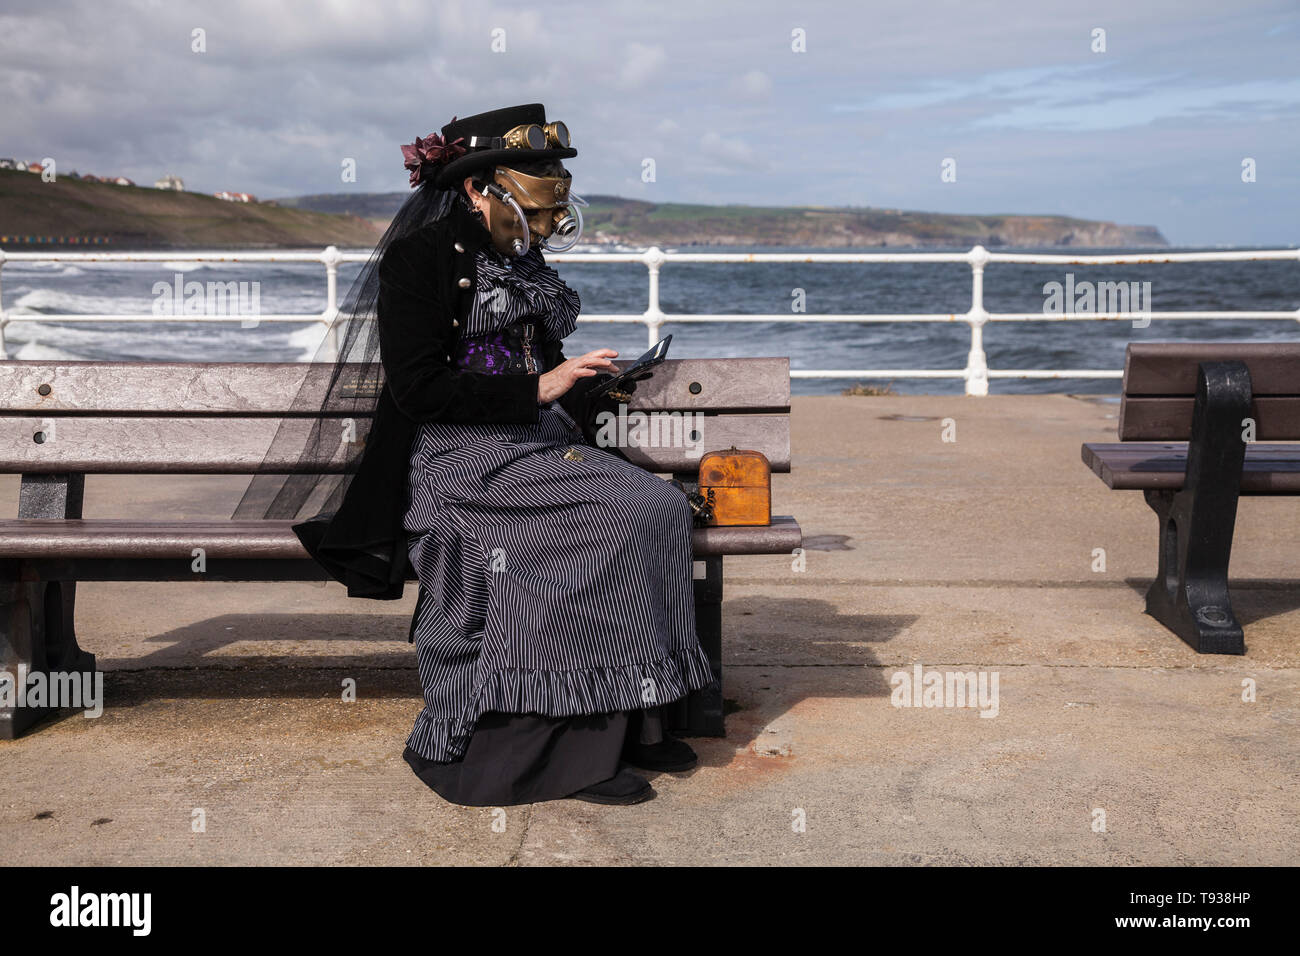 A Goth / Steampunk woman checks her phone during a break in the Goth Weekend celebrations at Whitby,North Yorkshire,England,UK - Stock Image